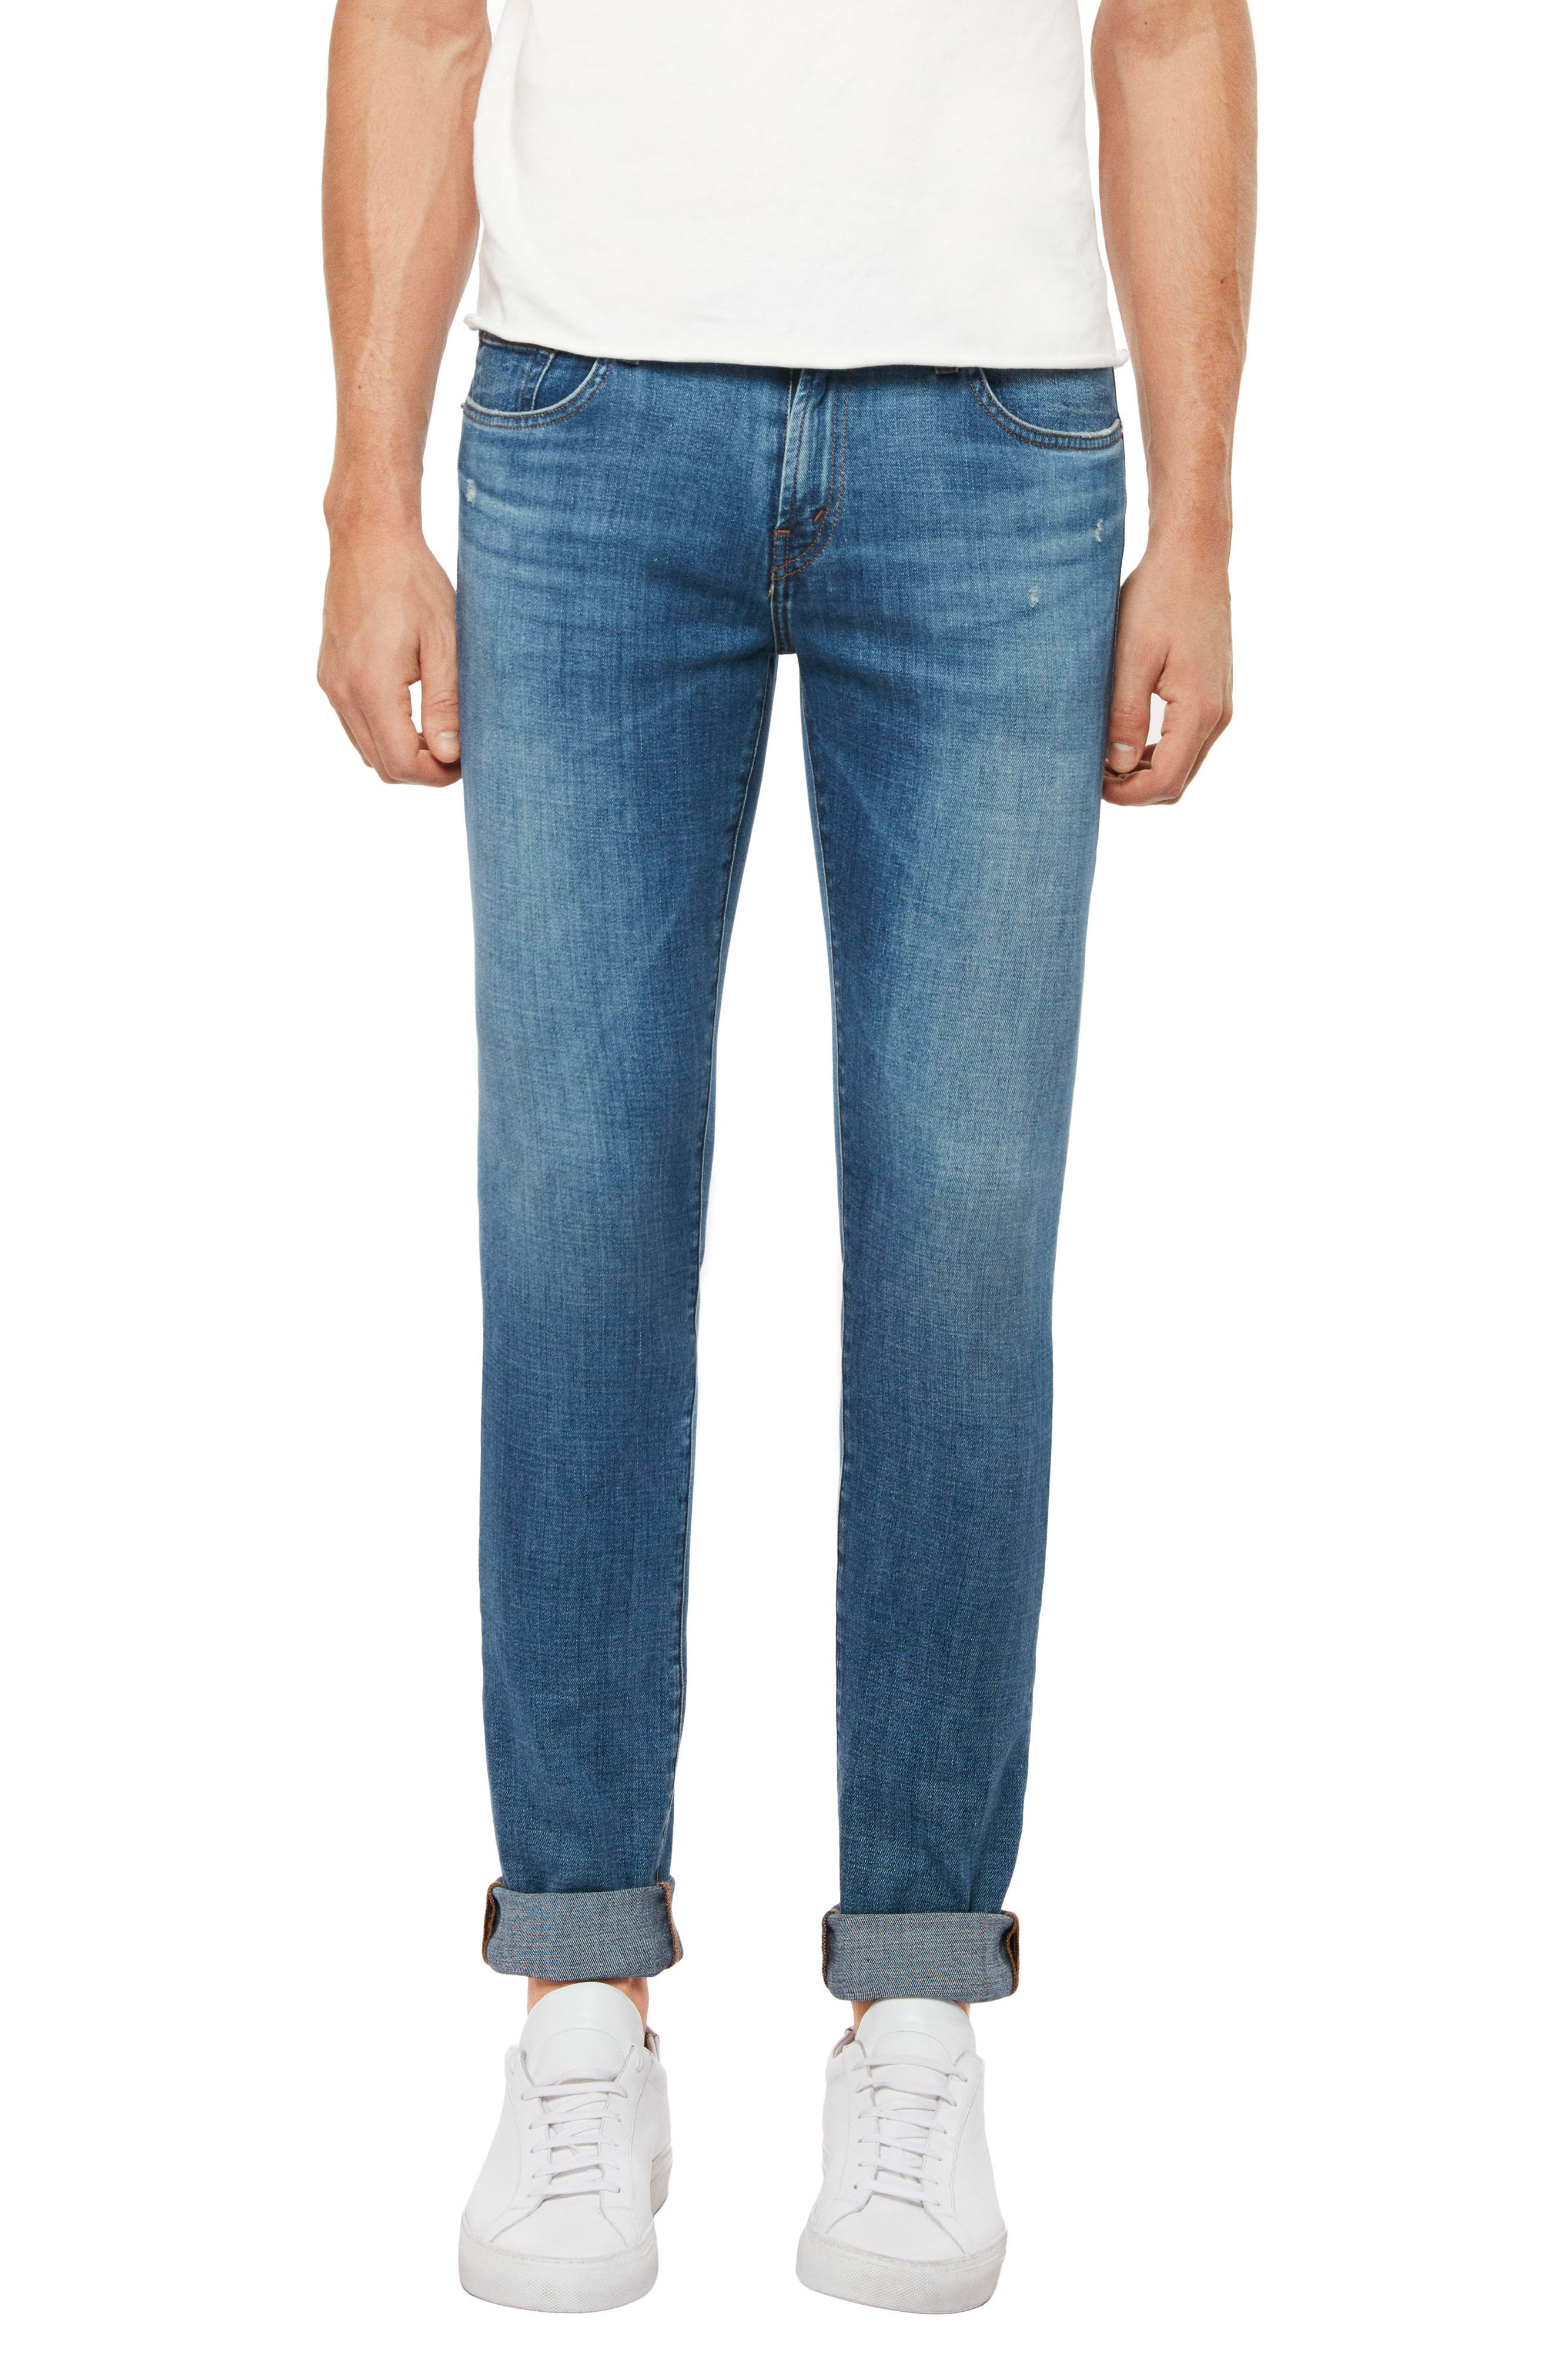 Tyler Slim Fit Jeans,                             Main thumbnail 1, color,                             SINTER